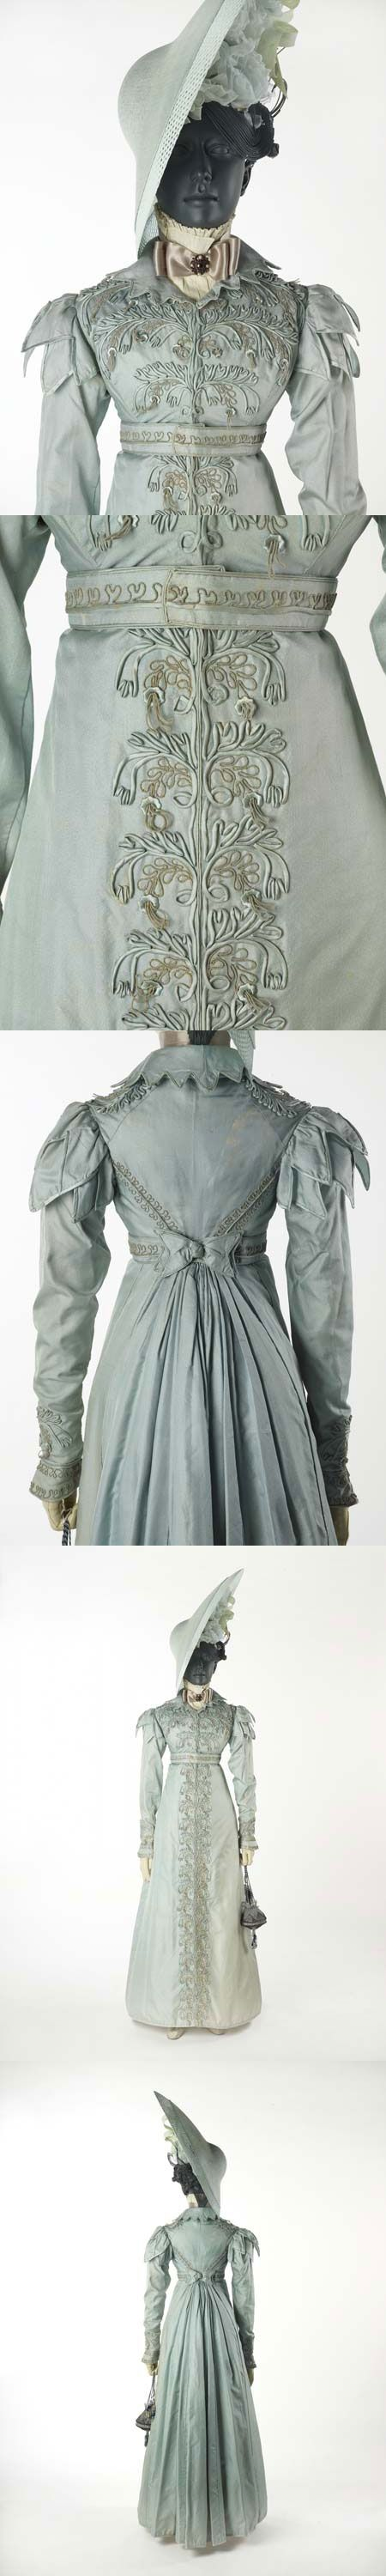 This pelisse was made for a trousseau in 1823. Kudos to whoever it was who combined the photos of this beauty into one pin.